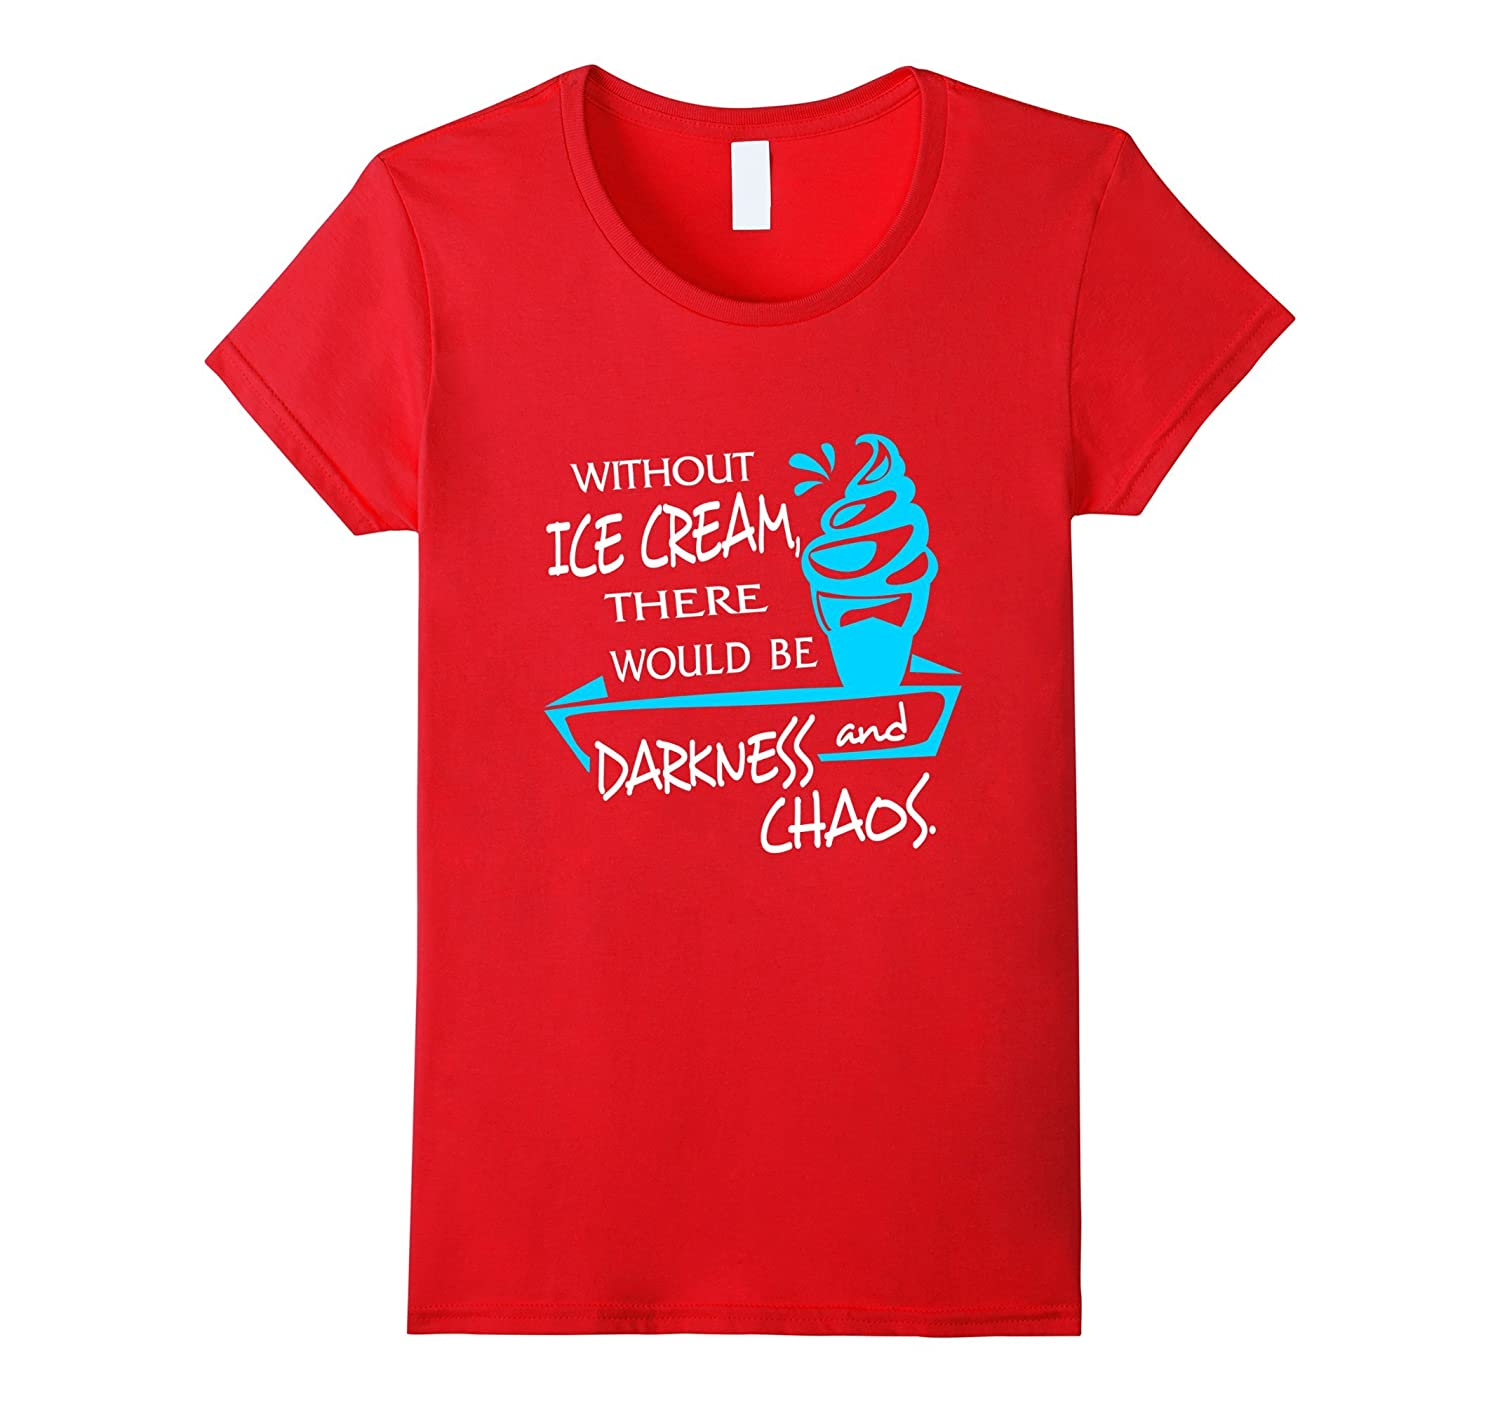 Without Ice Cream Shirt There Would Be Darkness And Chaos